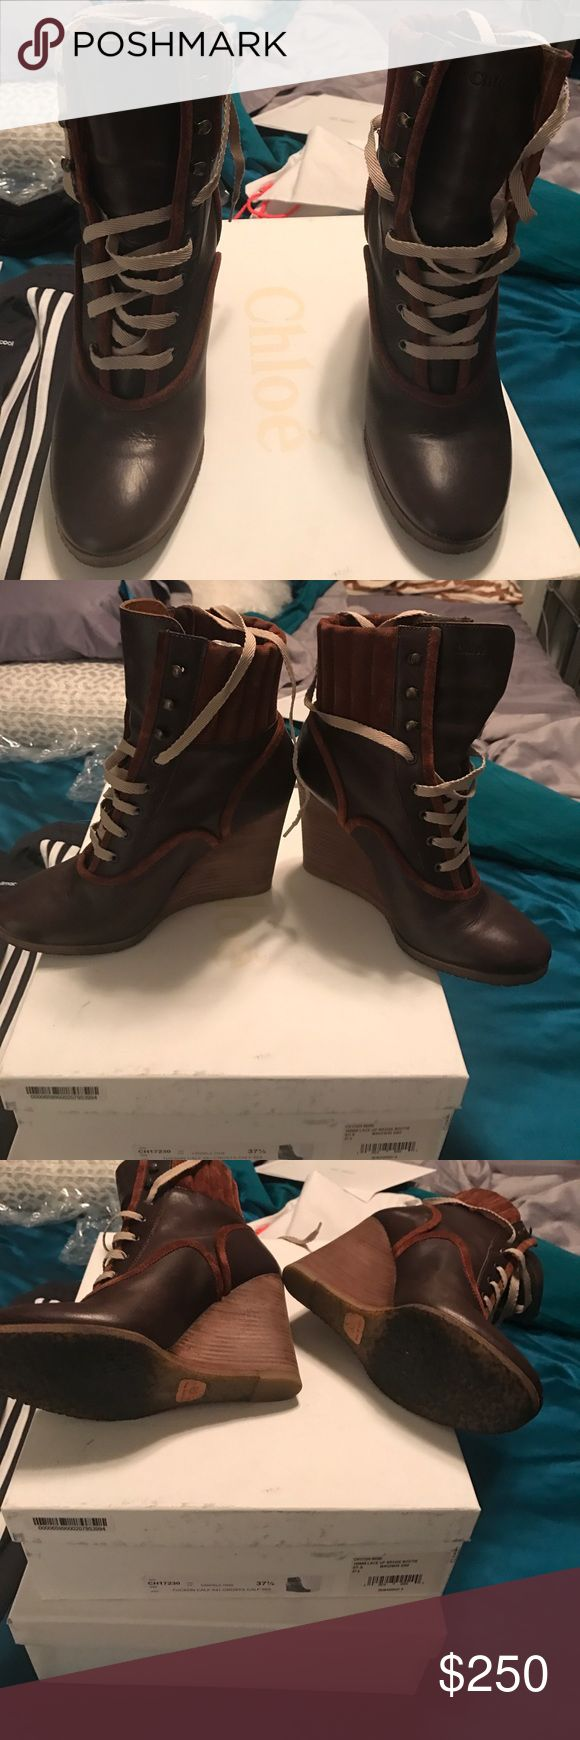 Chloe wedge boot Chloe brown lace up boot Chloe Shoes Wedges